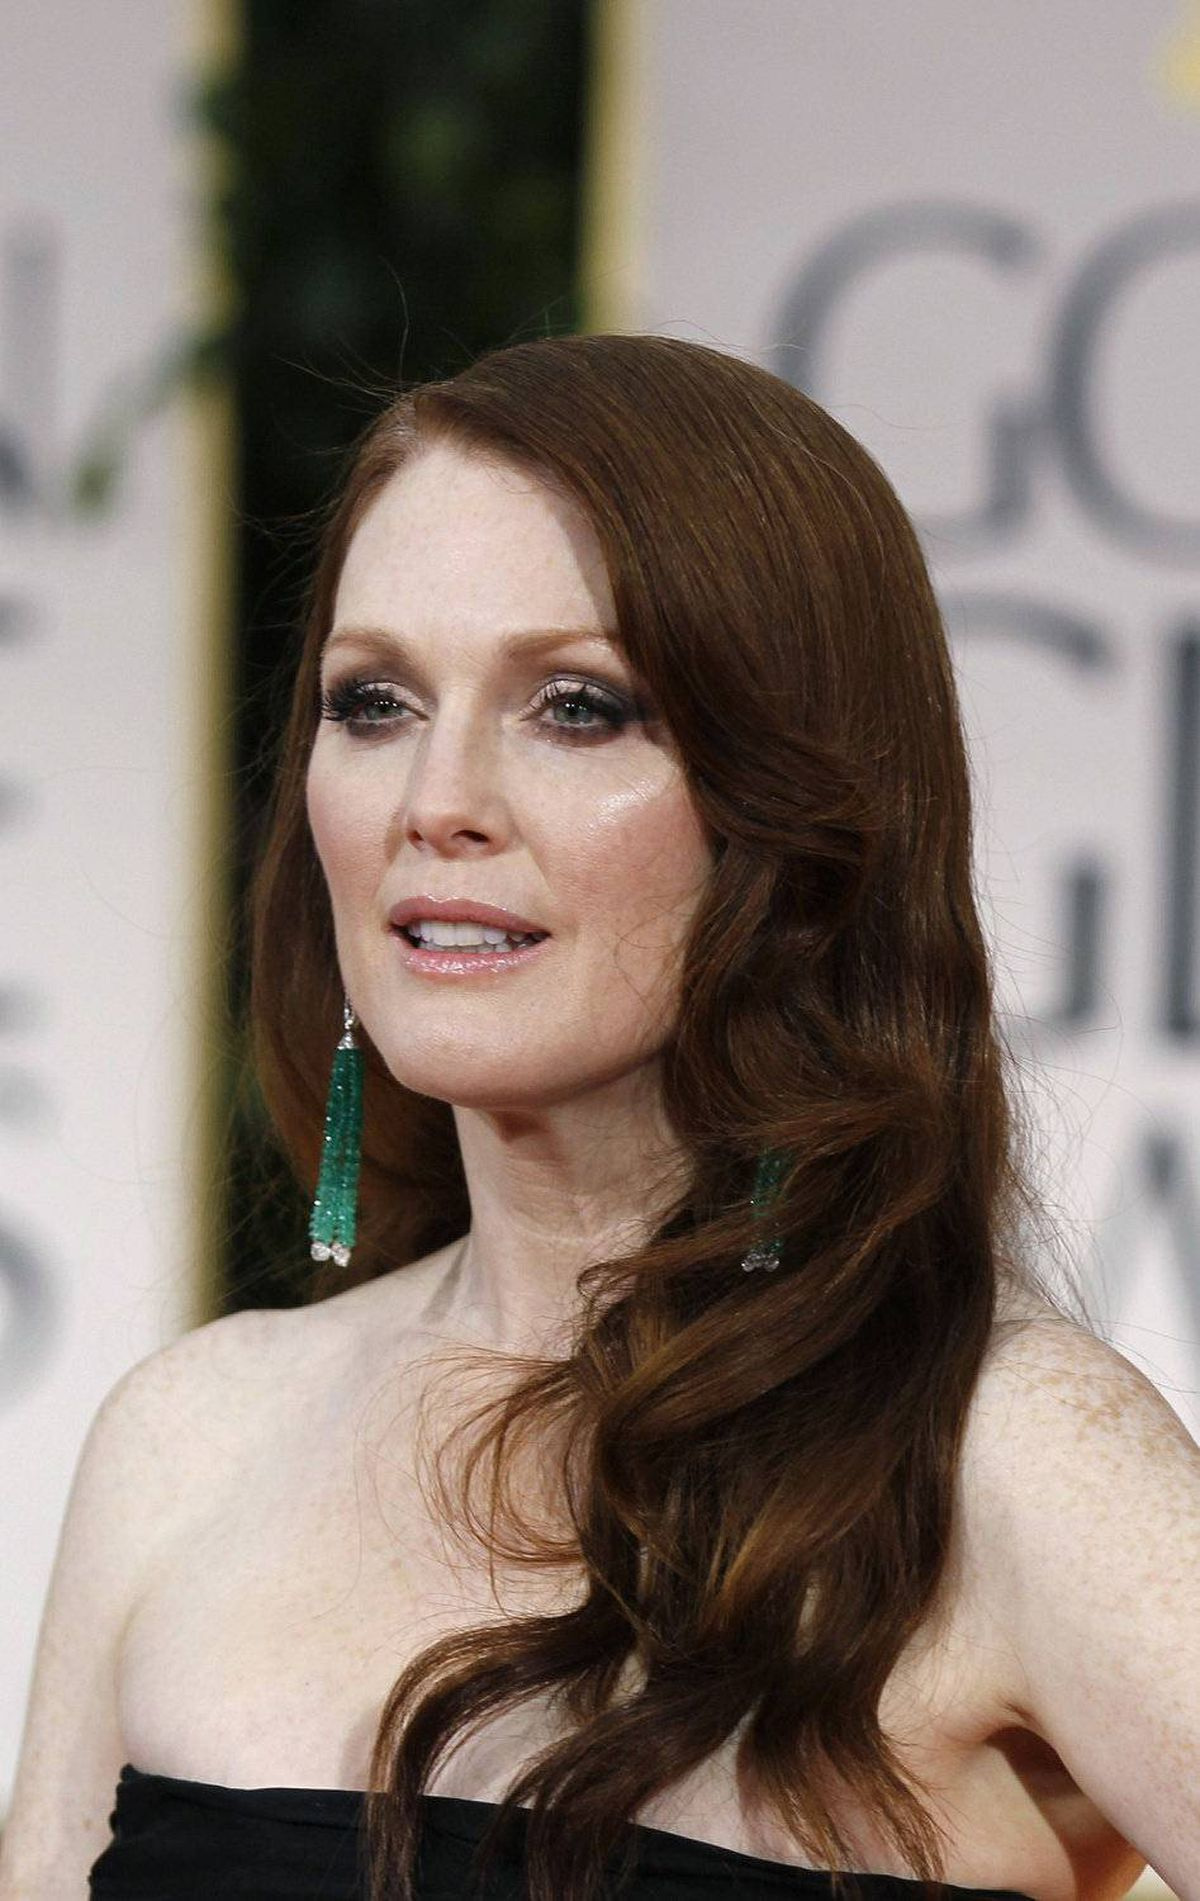 JULIANNE MOORE 'I think [to feel sexy] you need to be away from your children. ... The day-to-day of picking up kids and going to the eye doctor and then dropping them off at basketball ... doesn't make you feel very sexy.' Source: InStyle